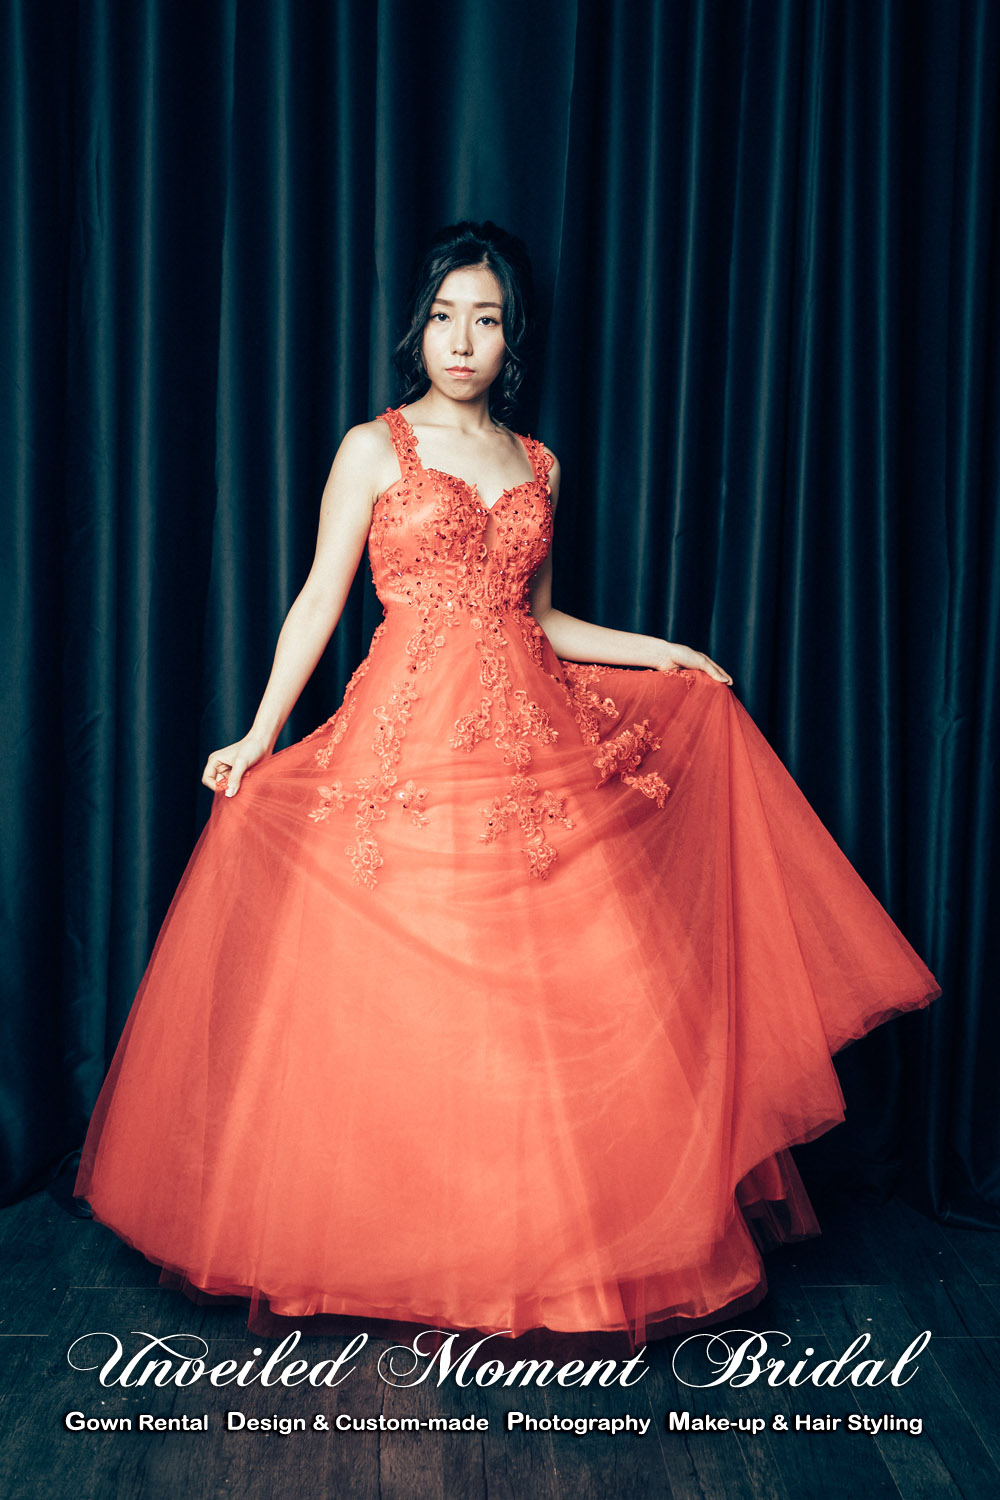 Spaghetti Straps, Low-back, see-through, ball evening dress with sweet heart neckline and lace embellishments. Colour: Red. 蕾絲釘珠, 心形胸, 透視美背, 紅色公主傘裙晚裝